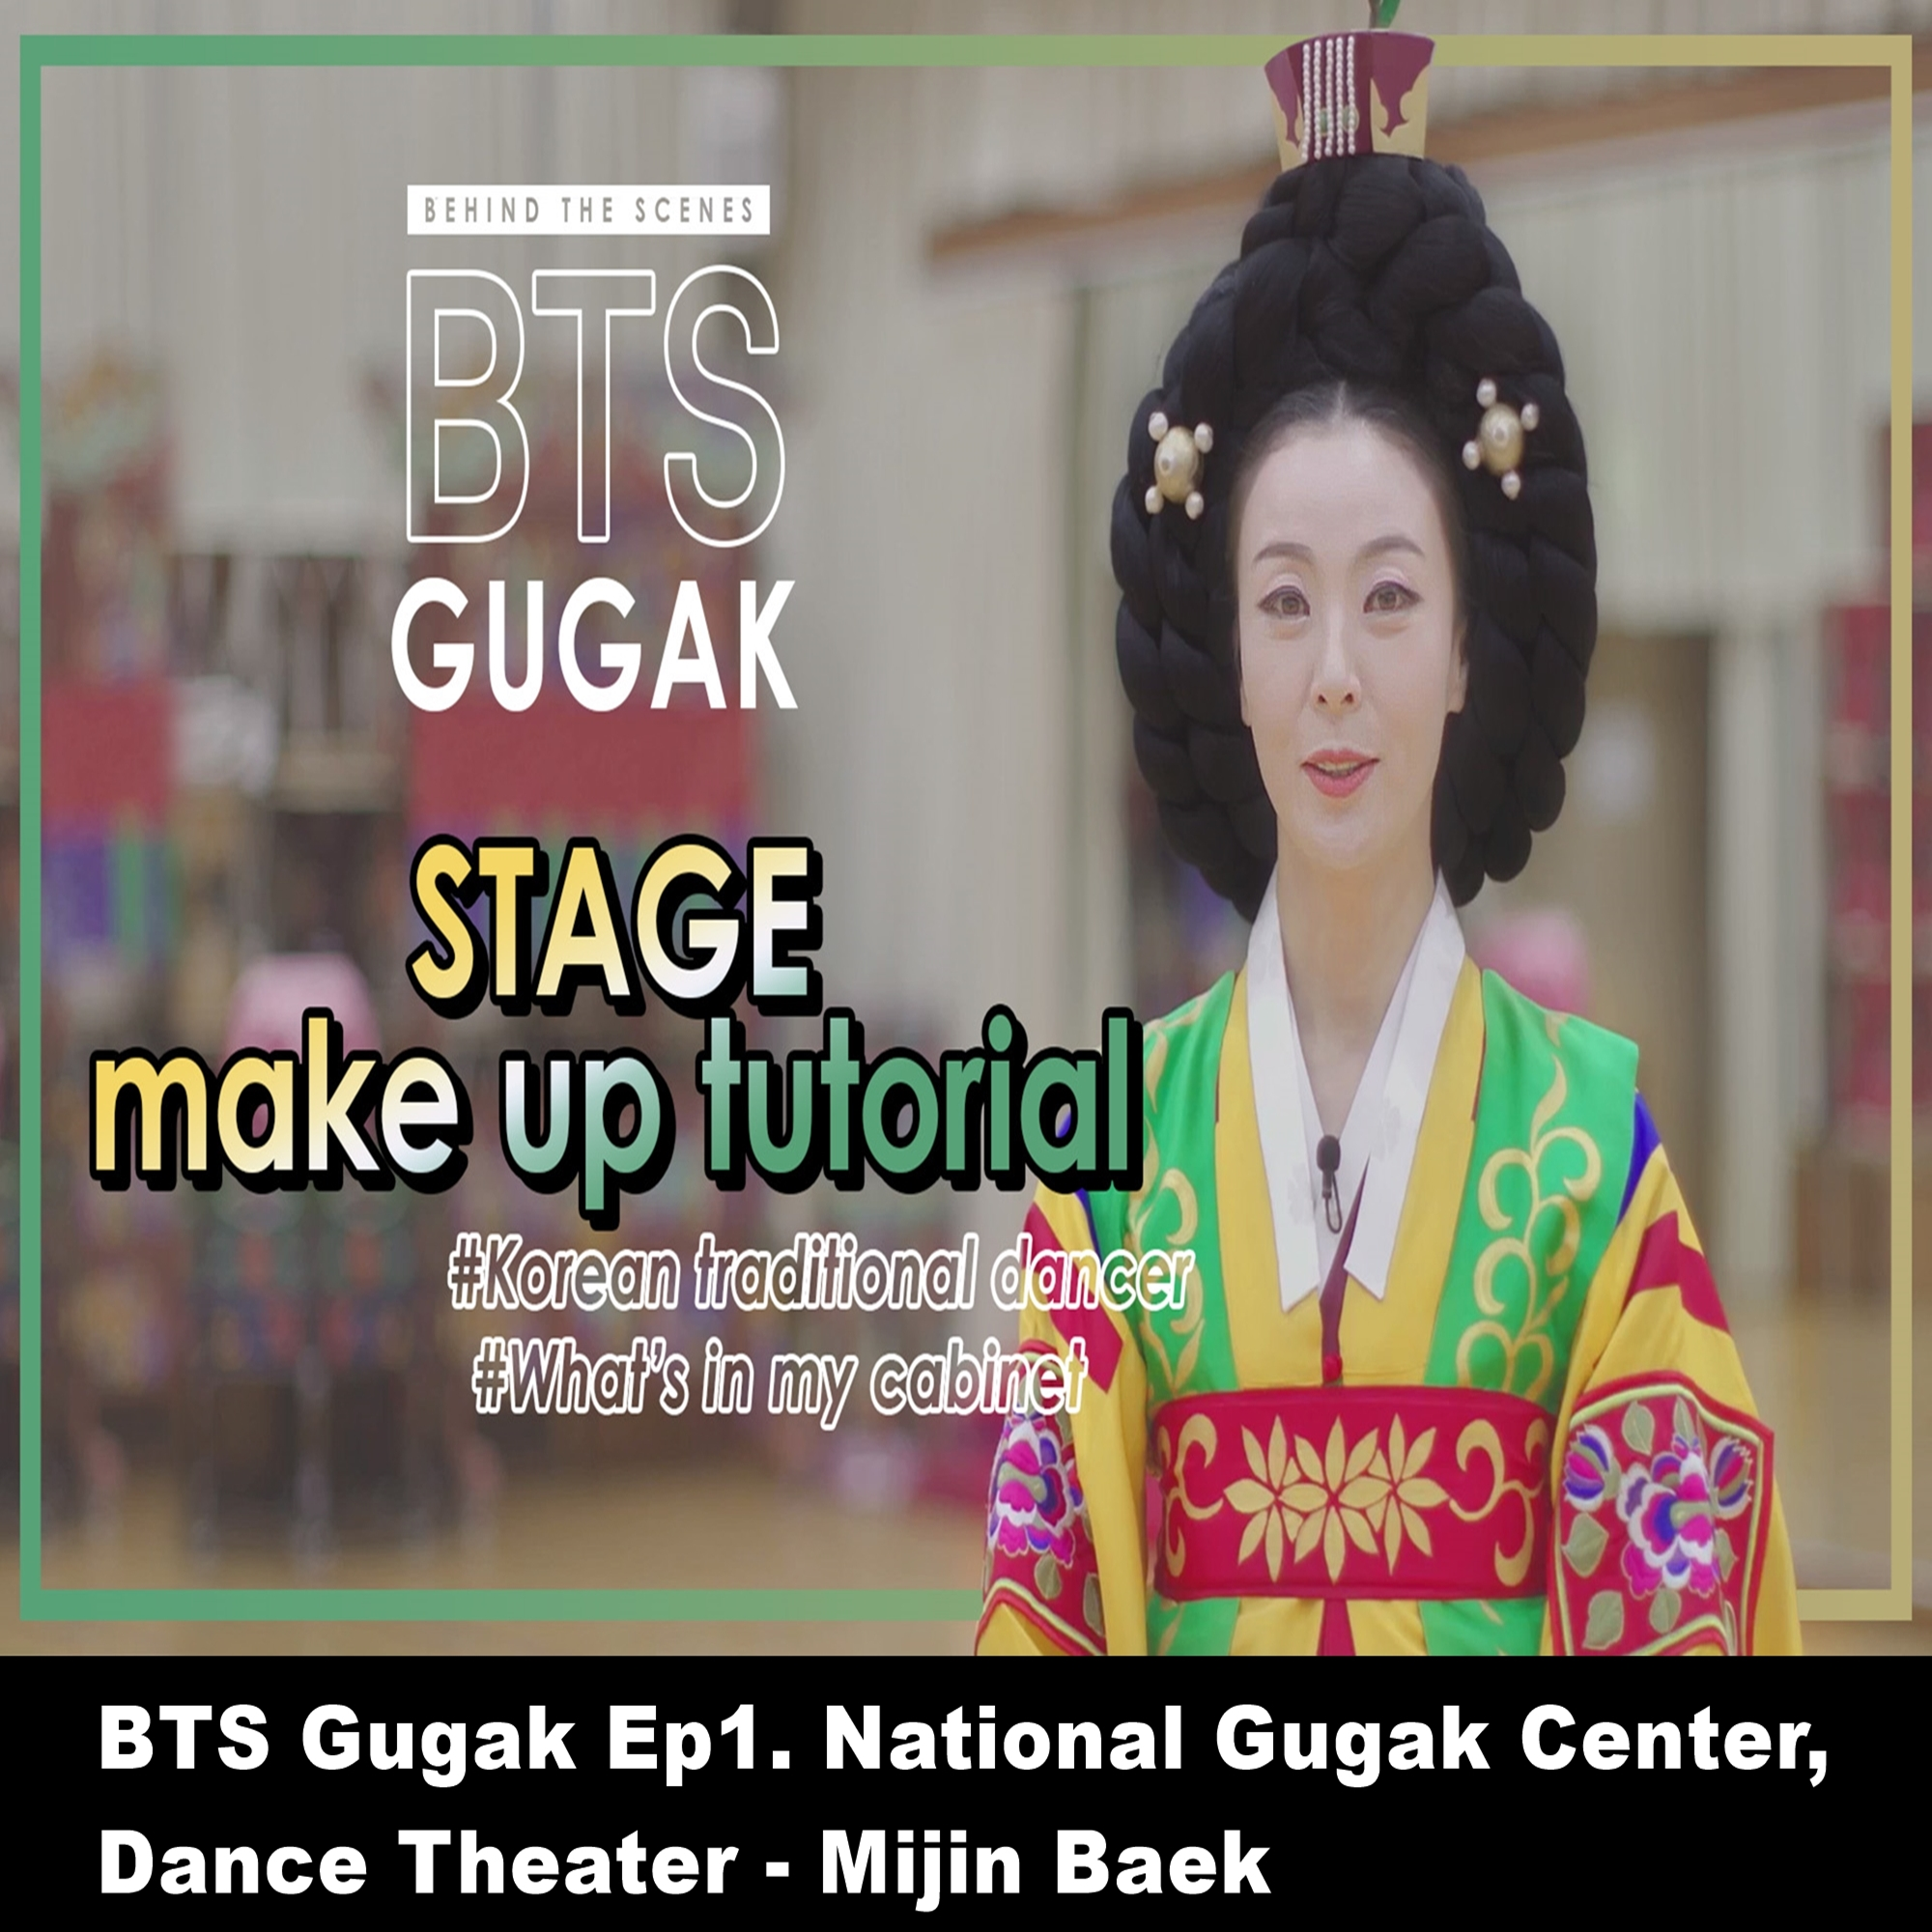 BTS Gugak (BEHIND THE SCENES GUGAK SERIES)